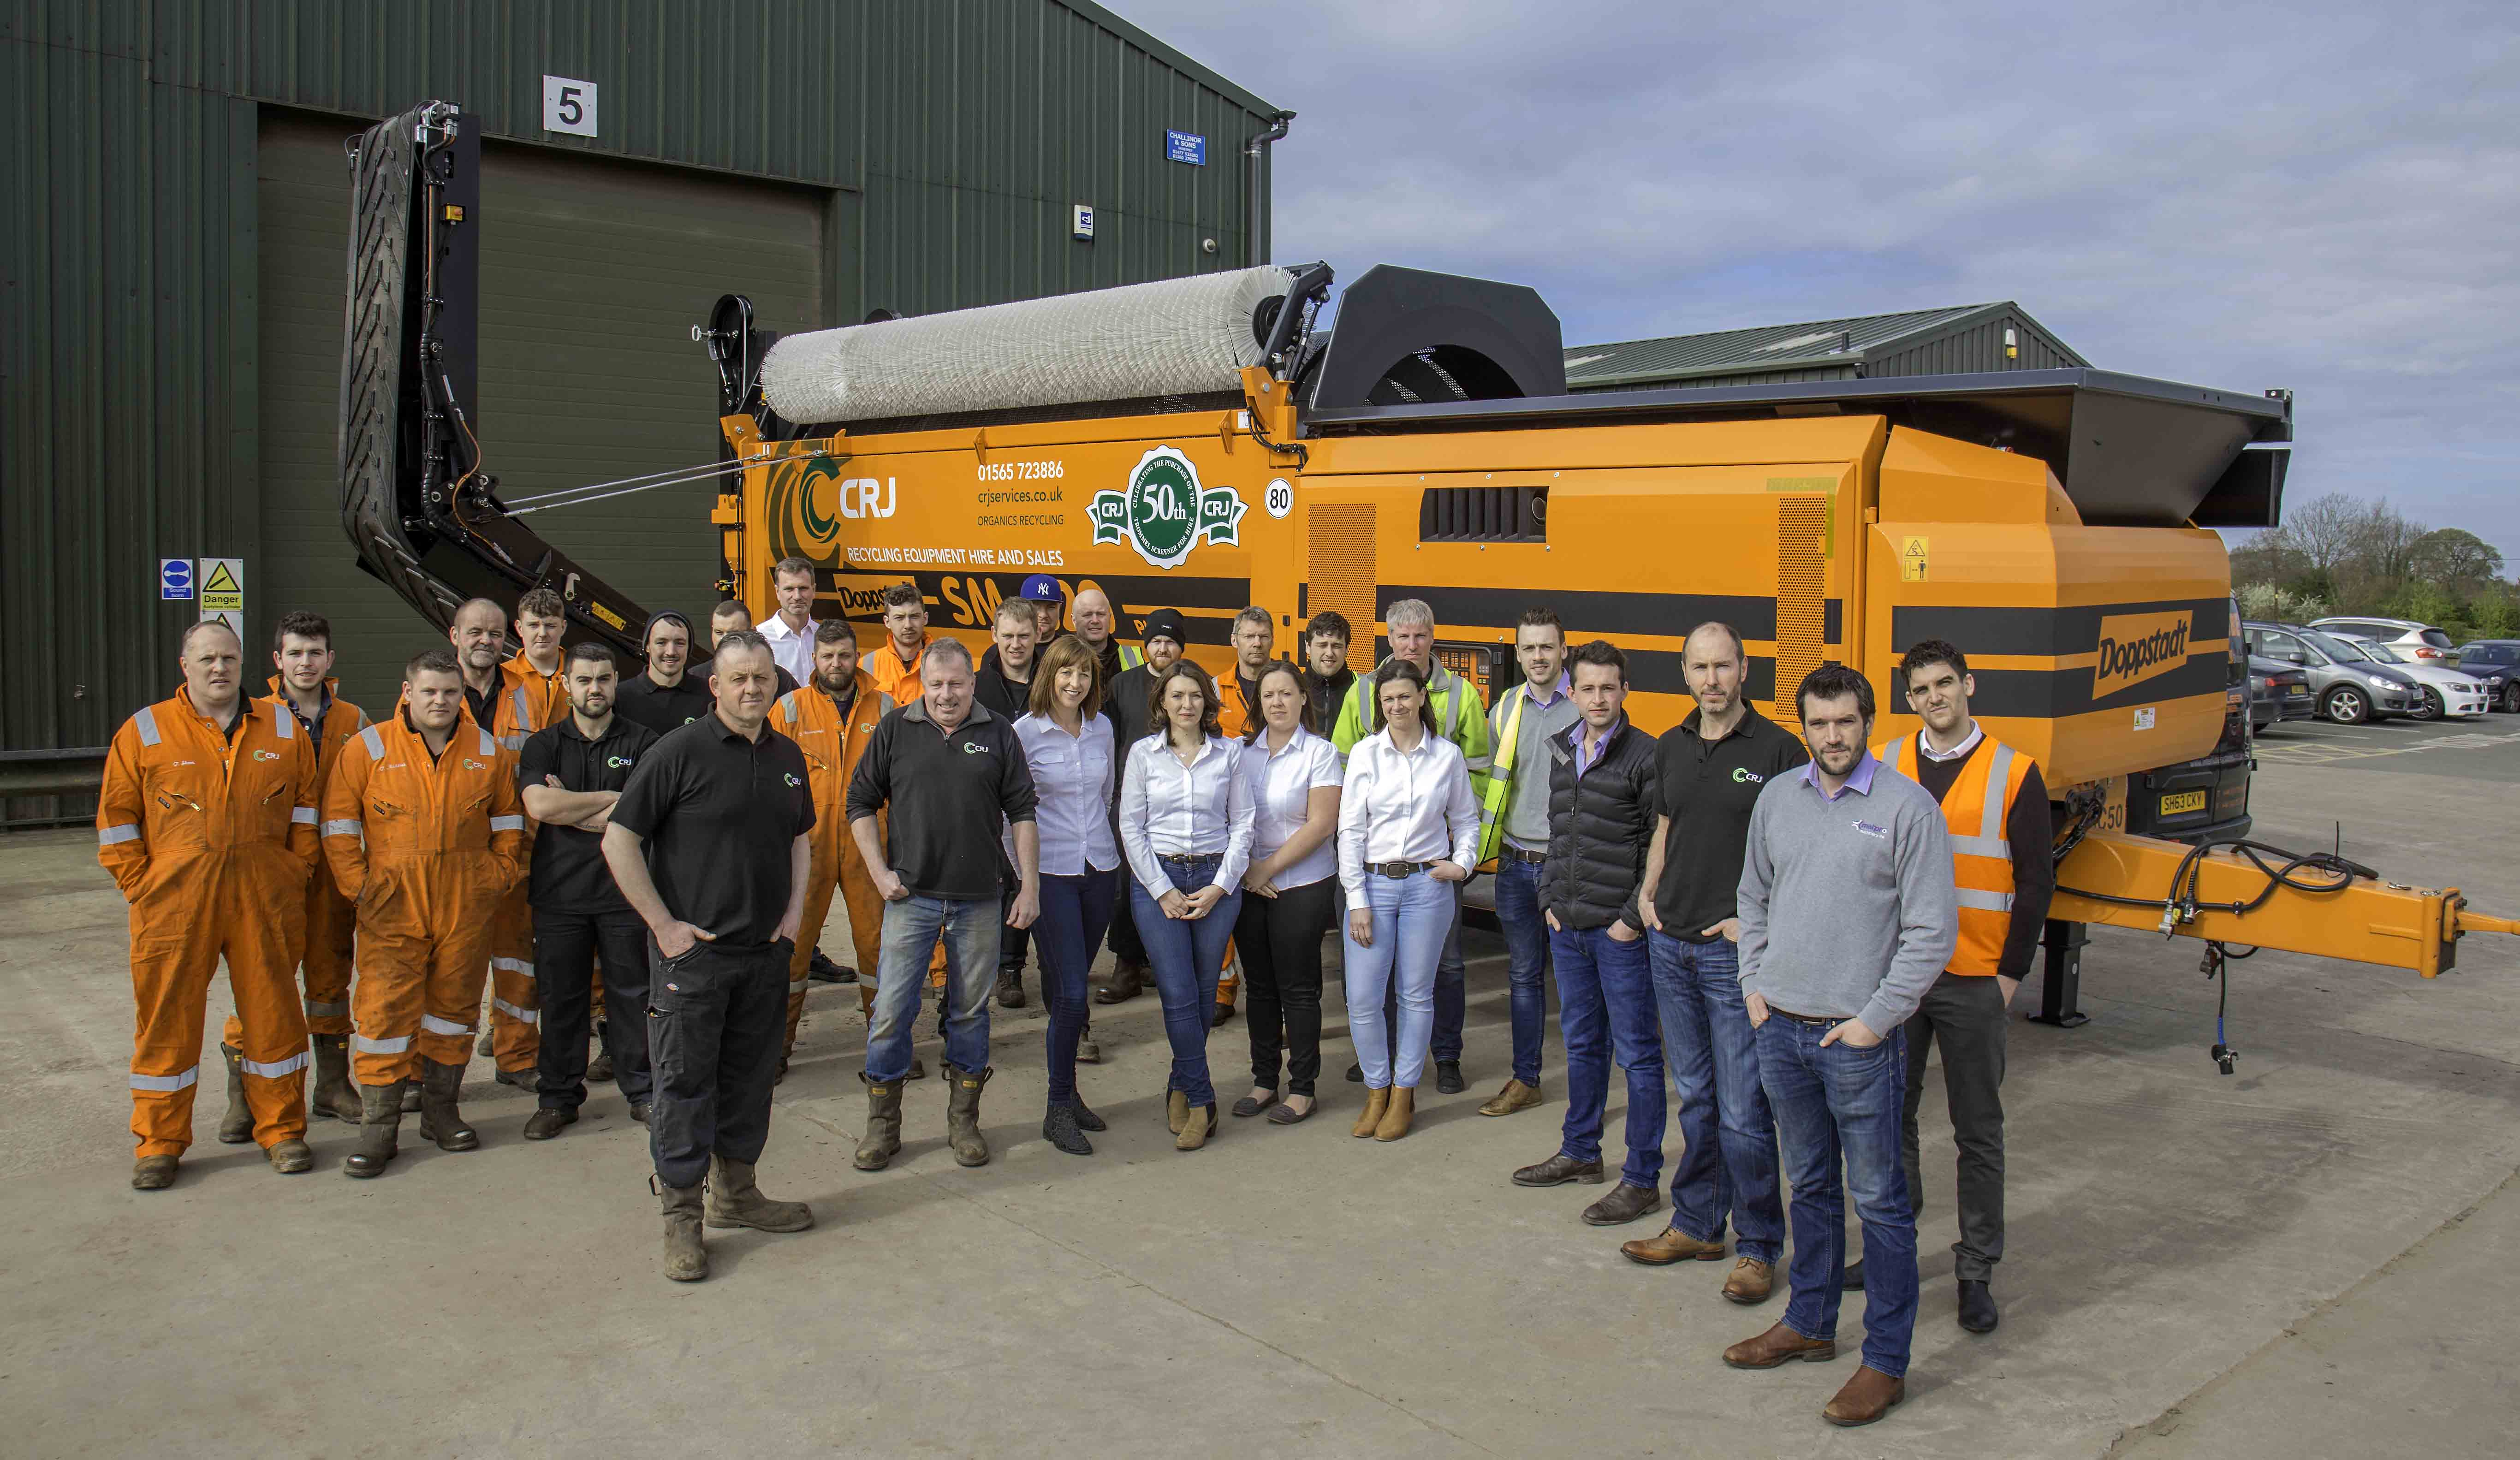 MACHINE MILESTONE FOR HIRE GIANT CRJ SERVICES